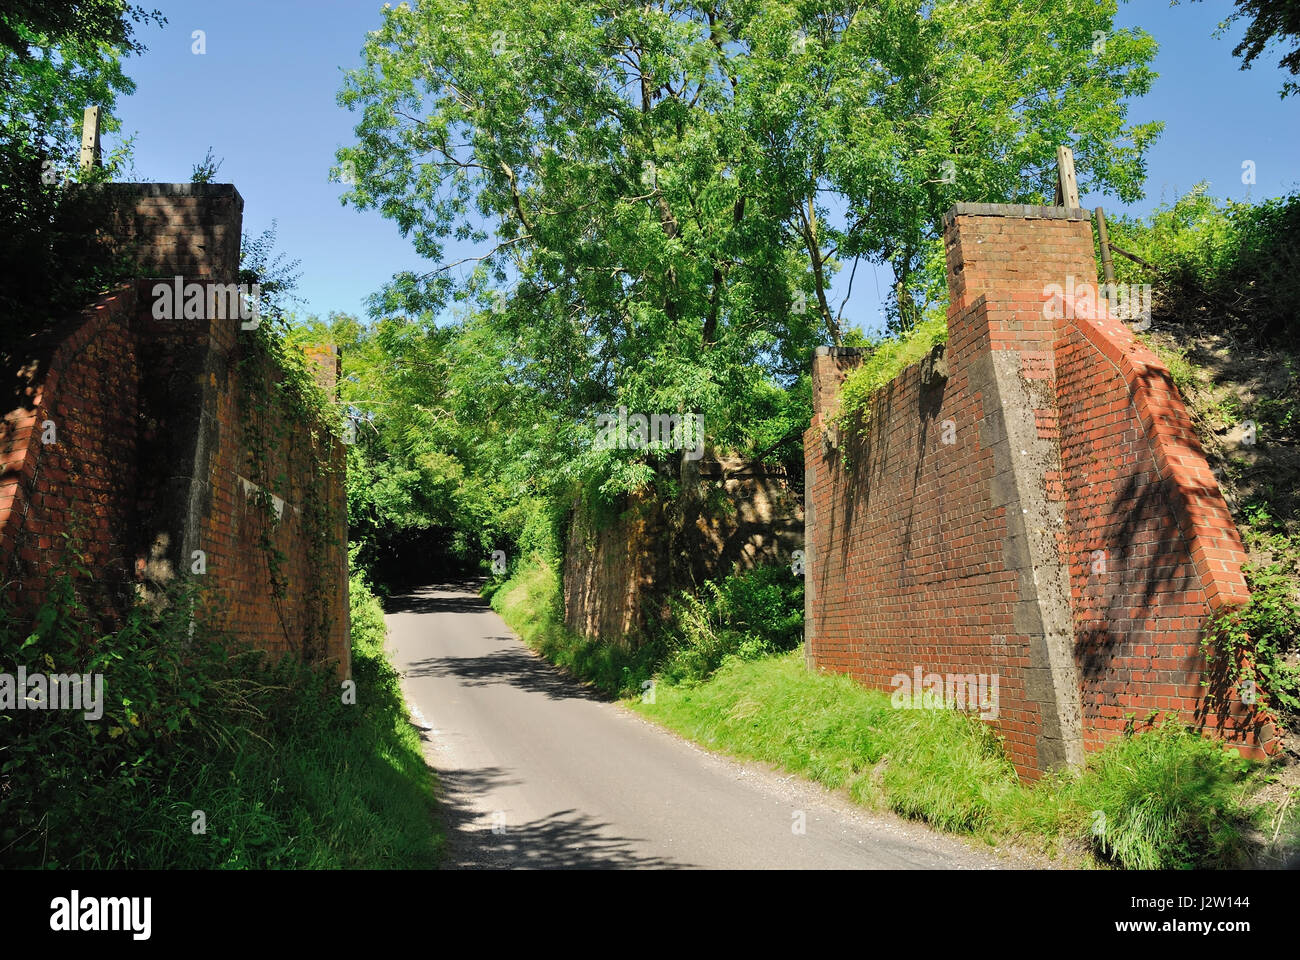 The supporting walls of two former railway bridges over a minor road. - Stock Image